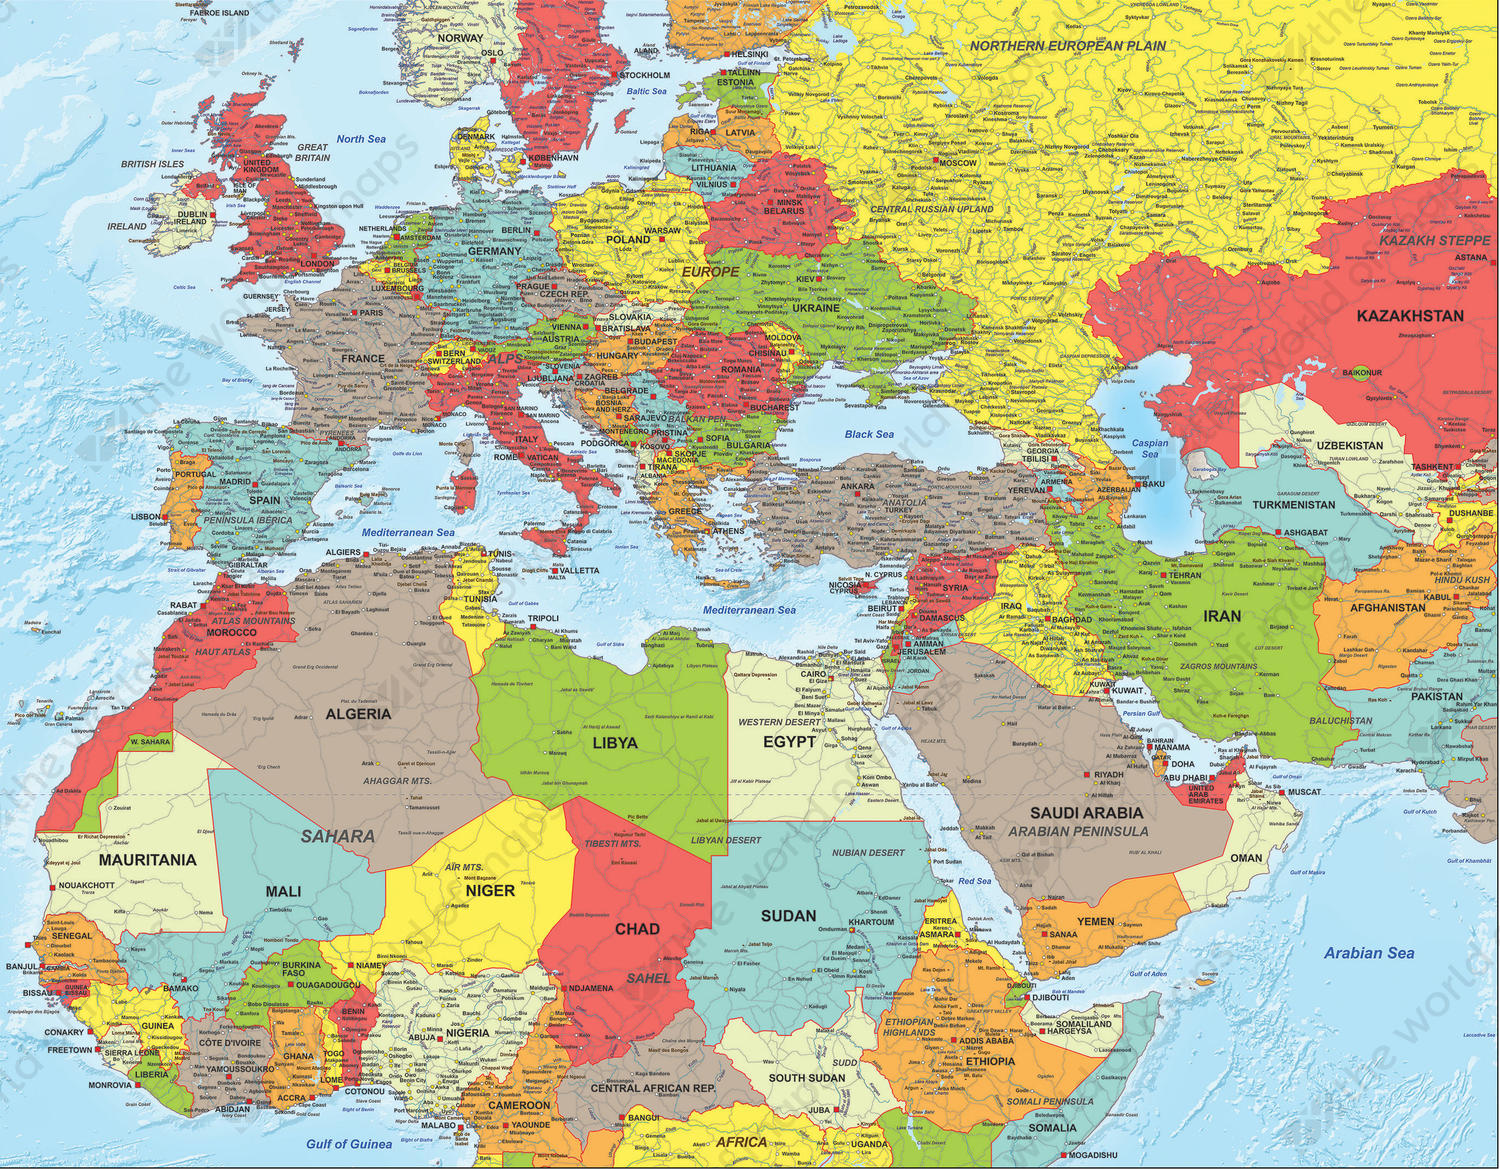 Digital Political Map North Africa Middle East And Europe 1317 The World Of Maps Com